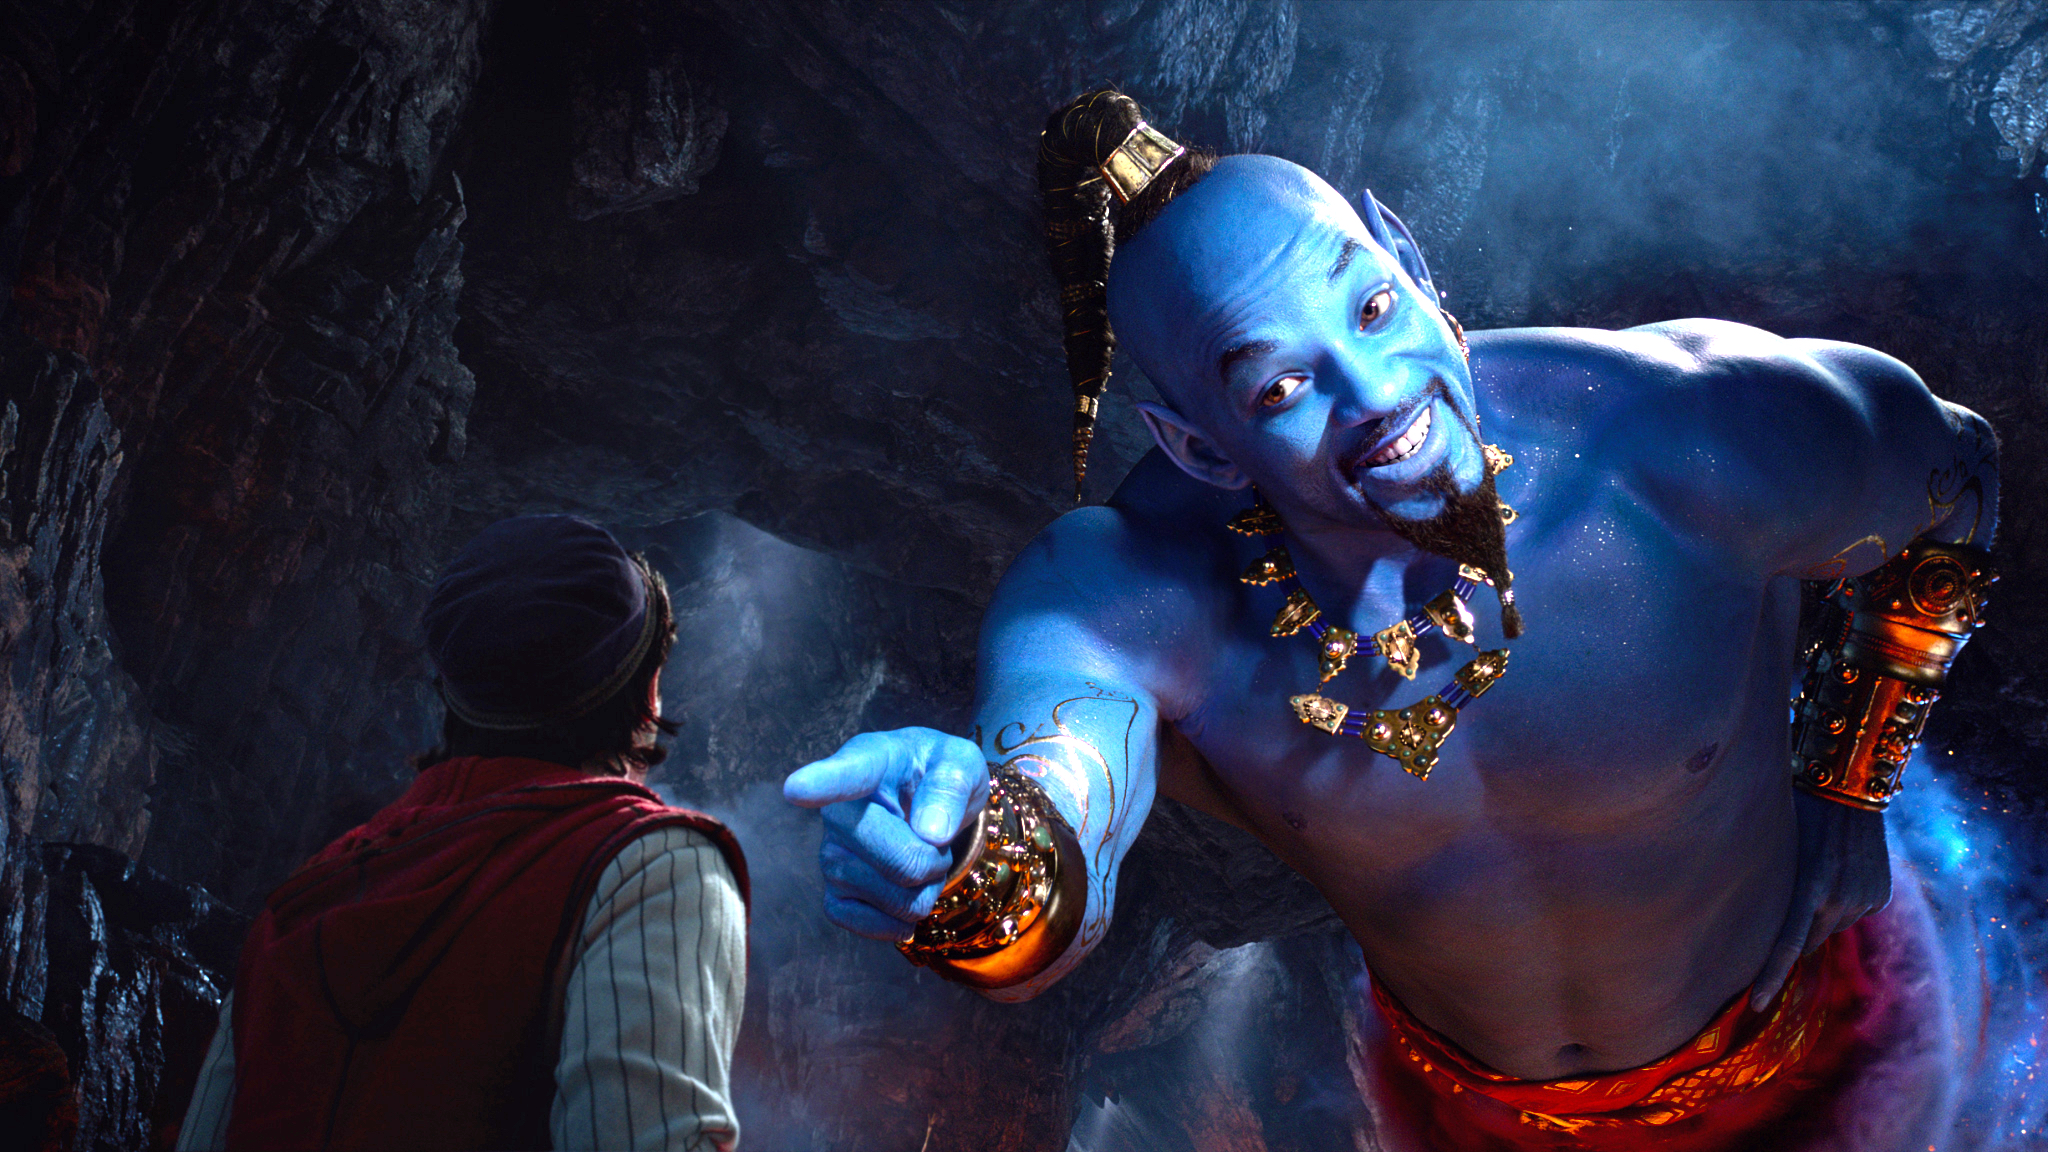 Theres a Genie In You